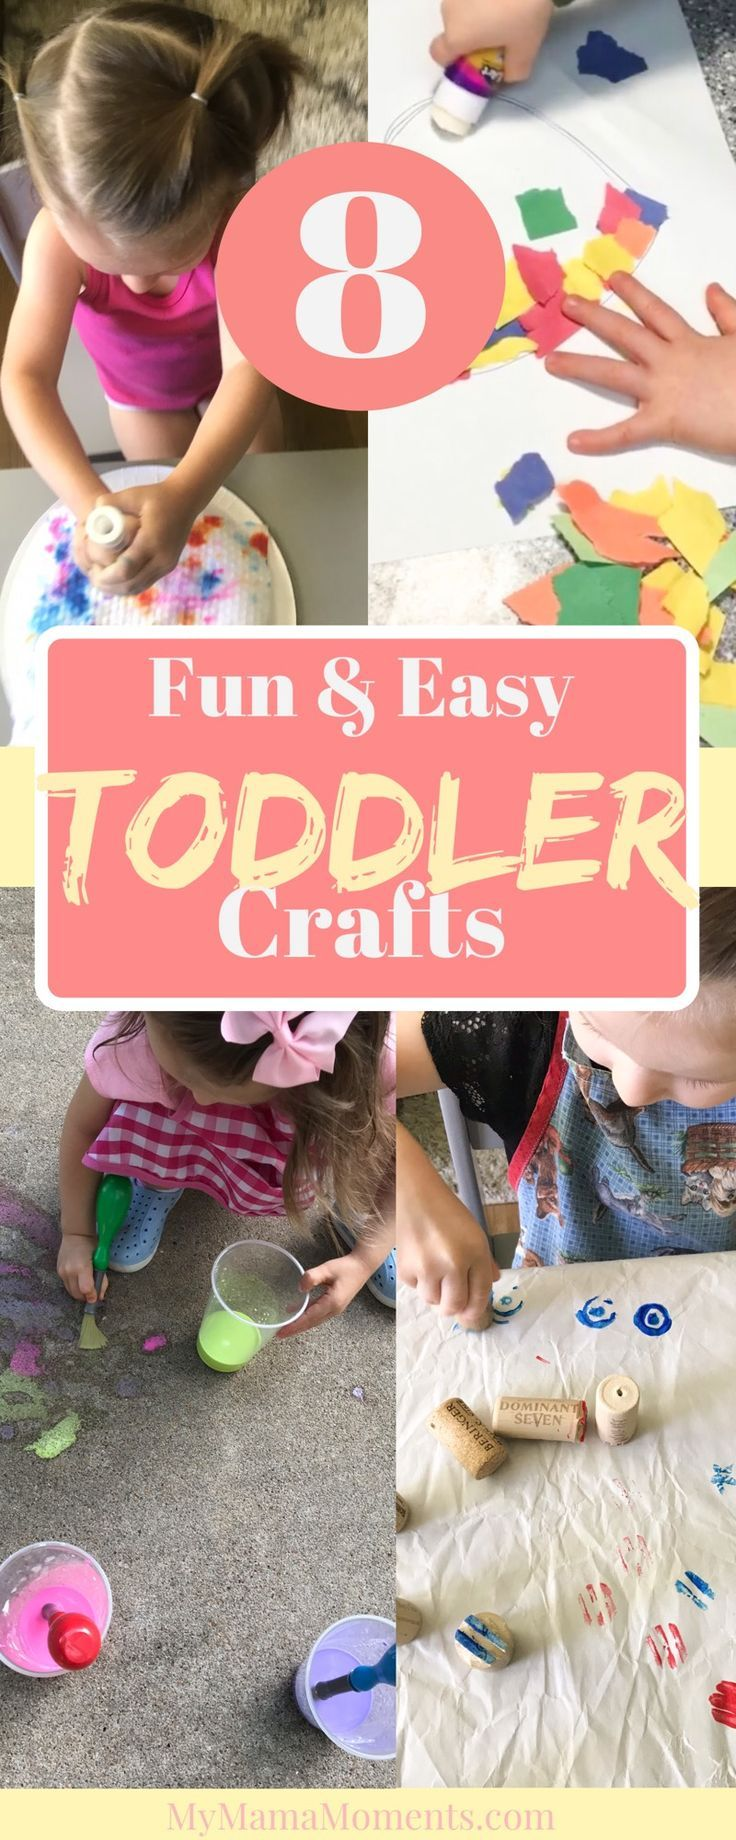 Toddler Crafts! Fun for your toddler & easy for both mom and tot! Wondering what crafts your toddler can do? Well, here are 8 of our favorite, Mama ap…